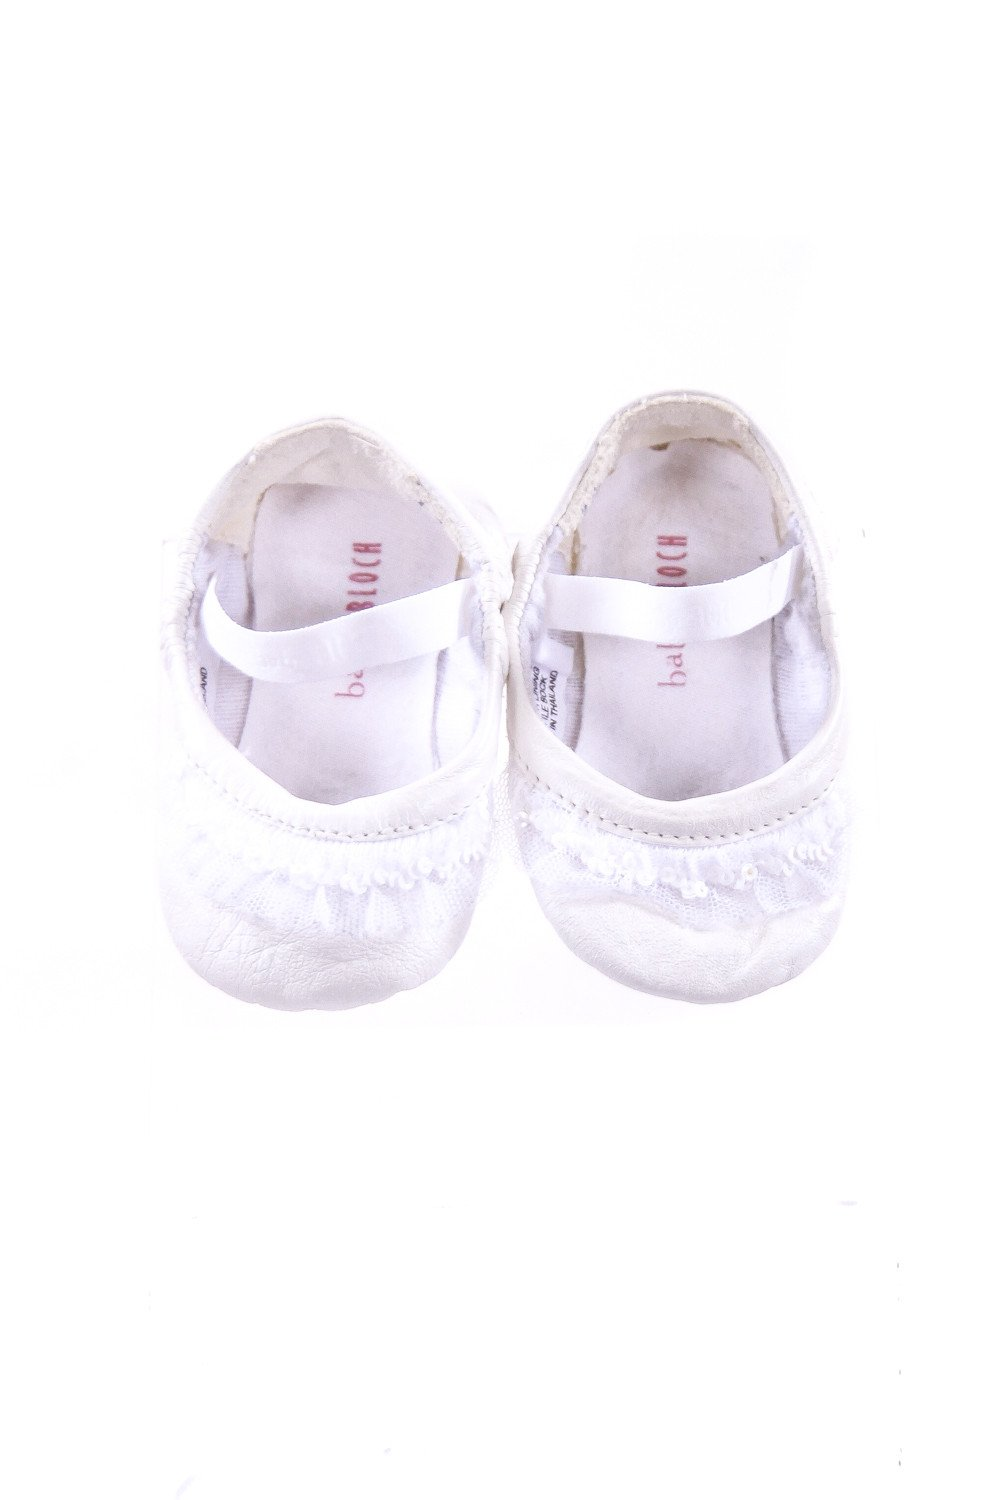 BABY BLOCH WHITE SOFT SHOES INFANT SIZE 3 *VGUC (LIGHT WEAR)